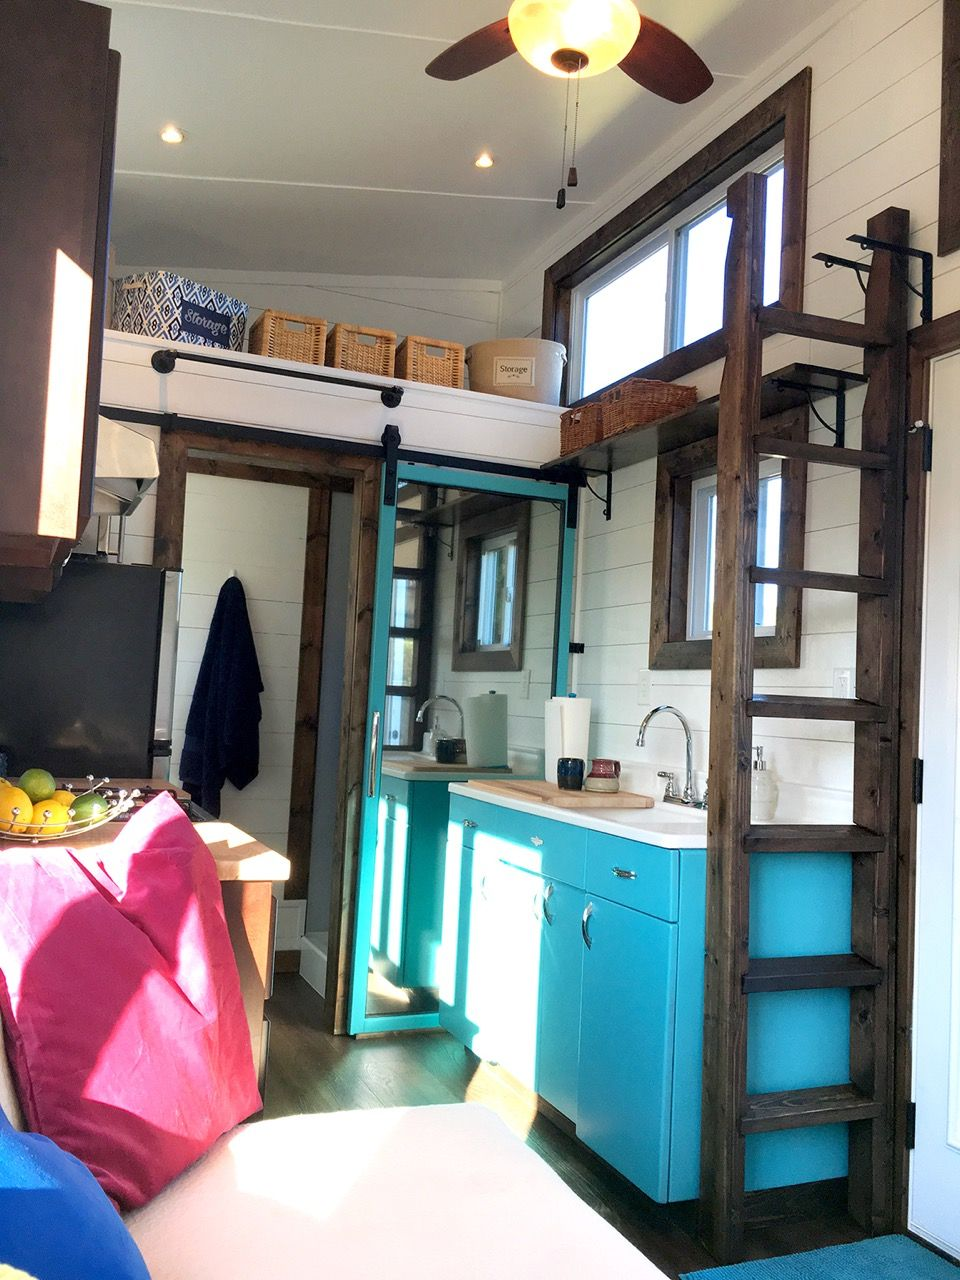 Youngstown Tiny Home Tiny house listings, Two bedroom